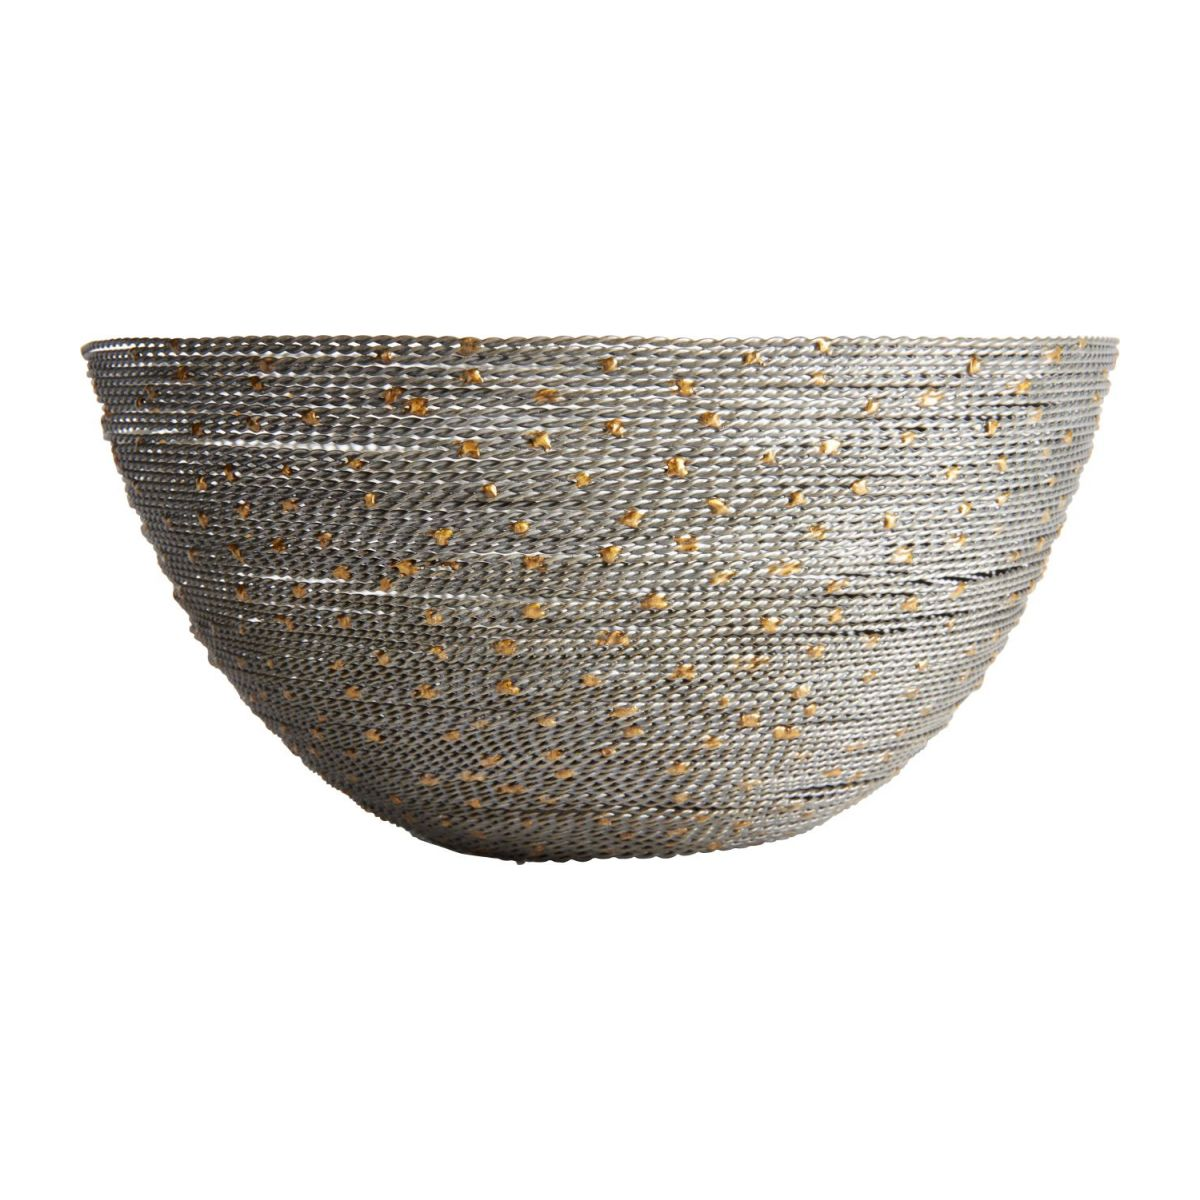 Small gold and grey twisted wire bowl n°1